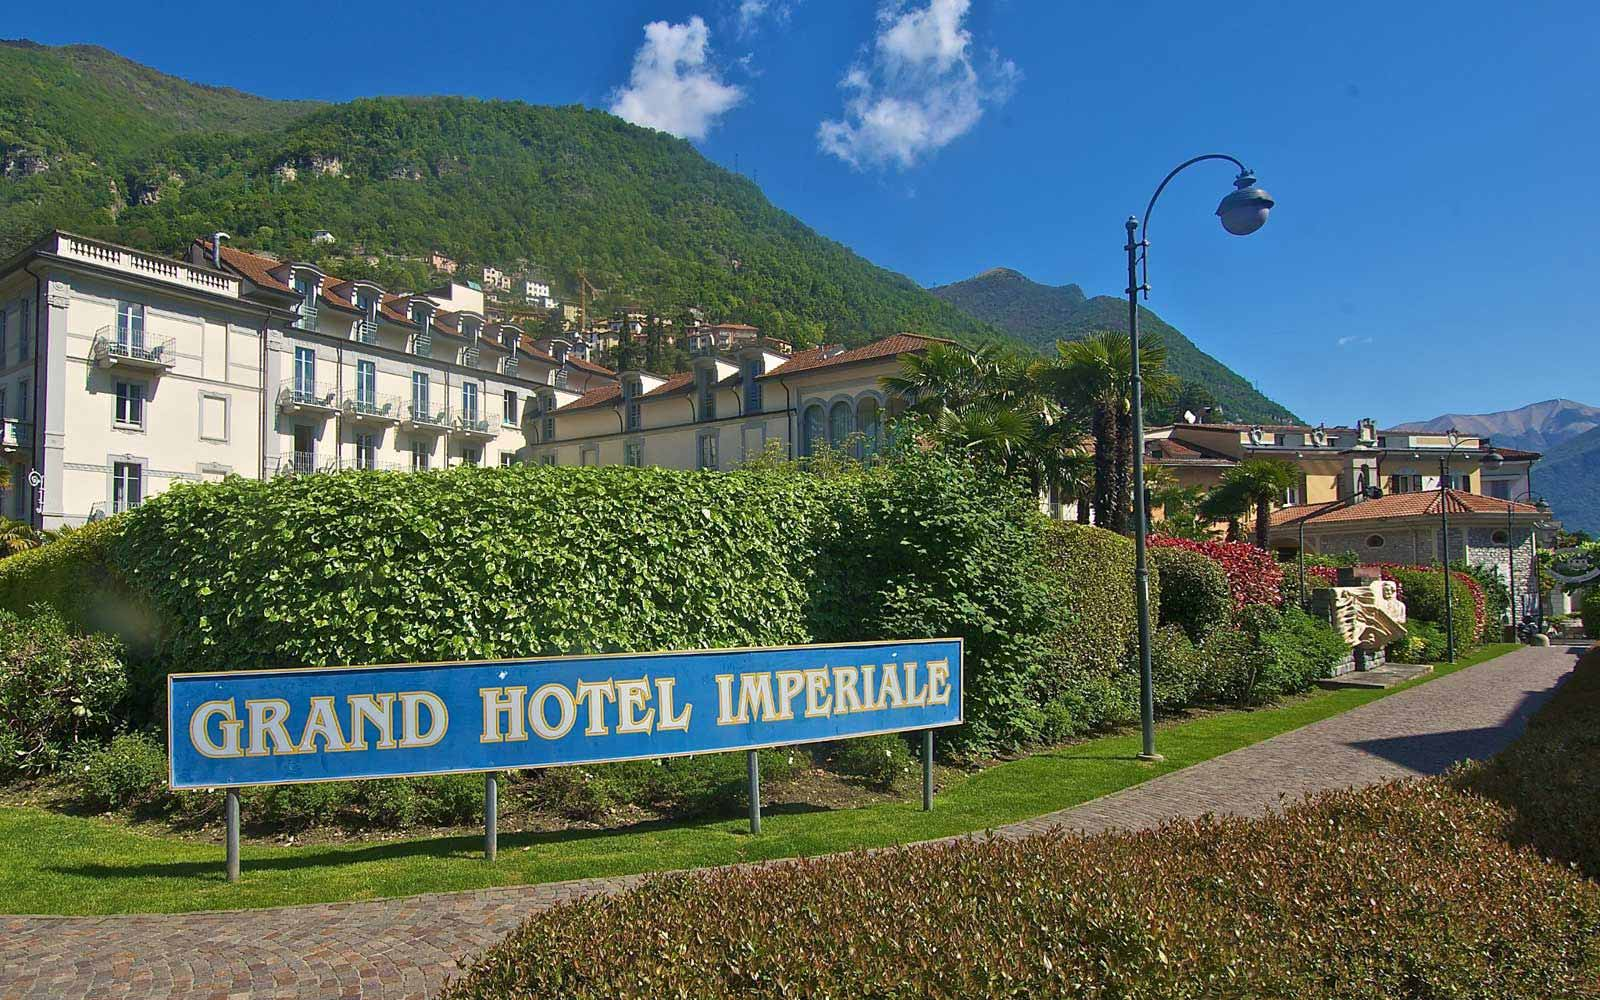 Driveway to Grand Hotel Imperiale